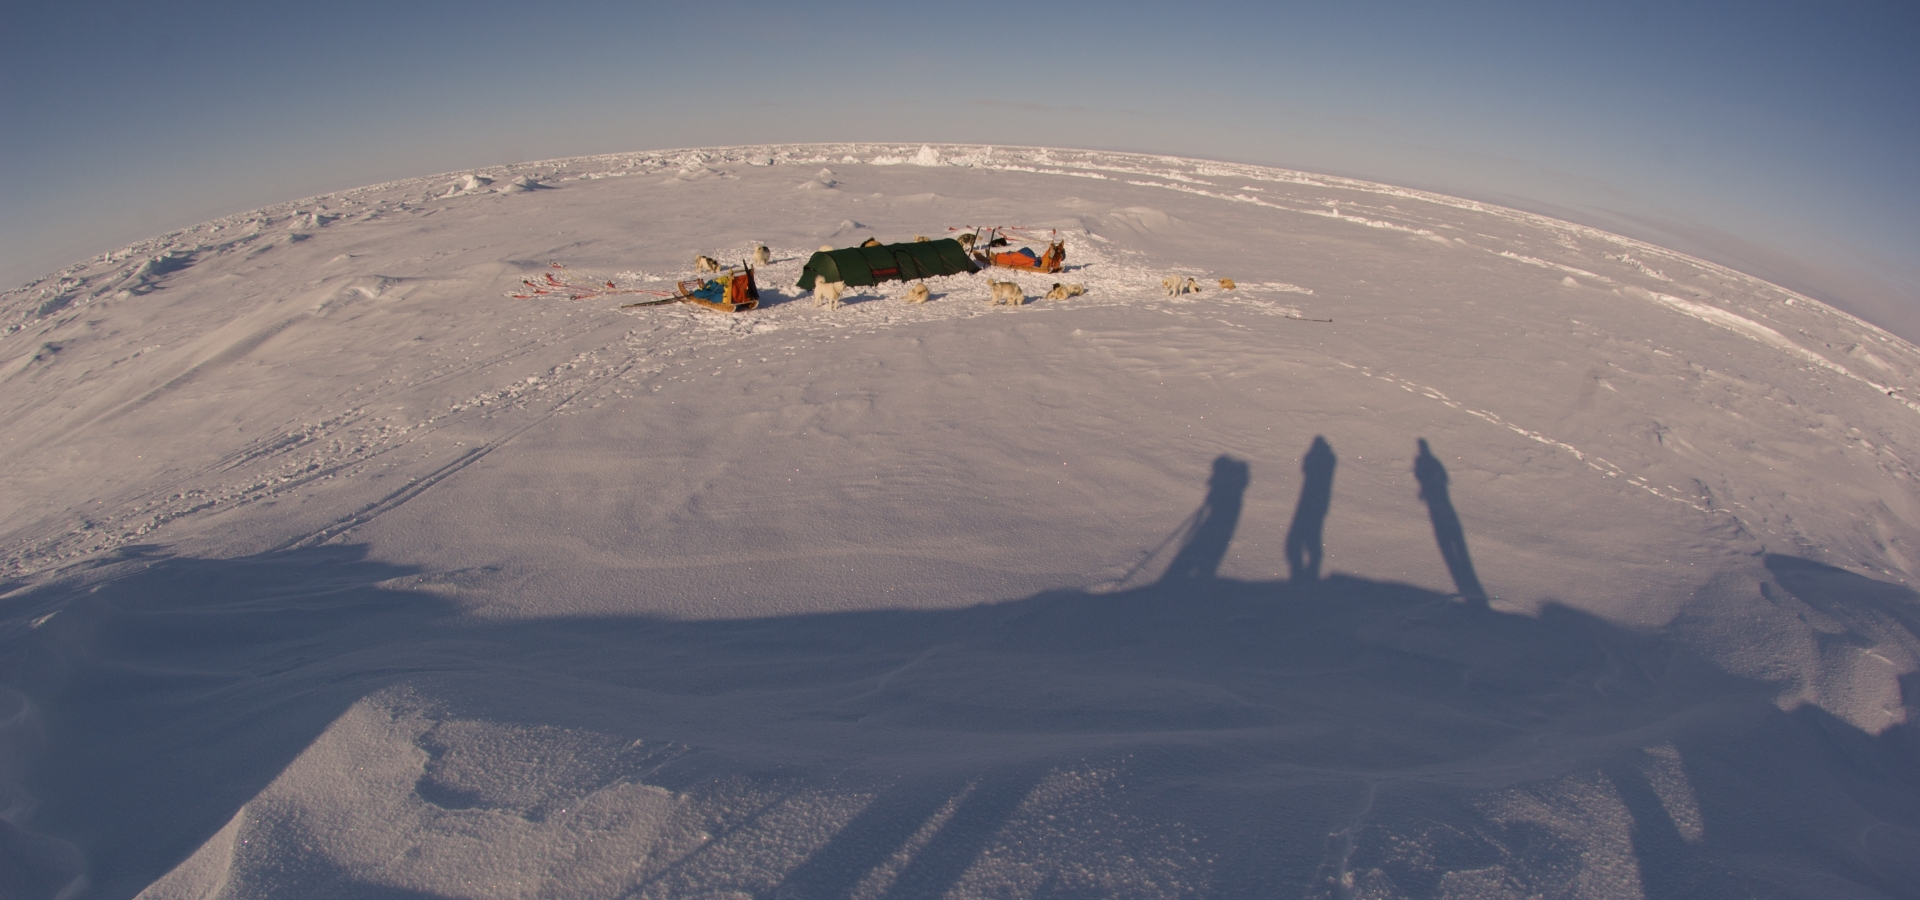 Four expeditions to the North Pole